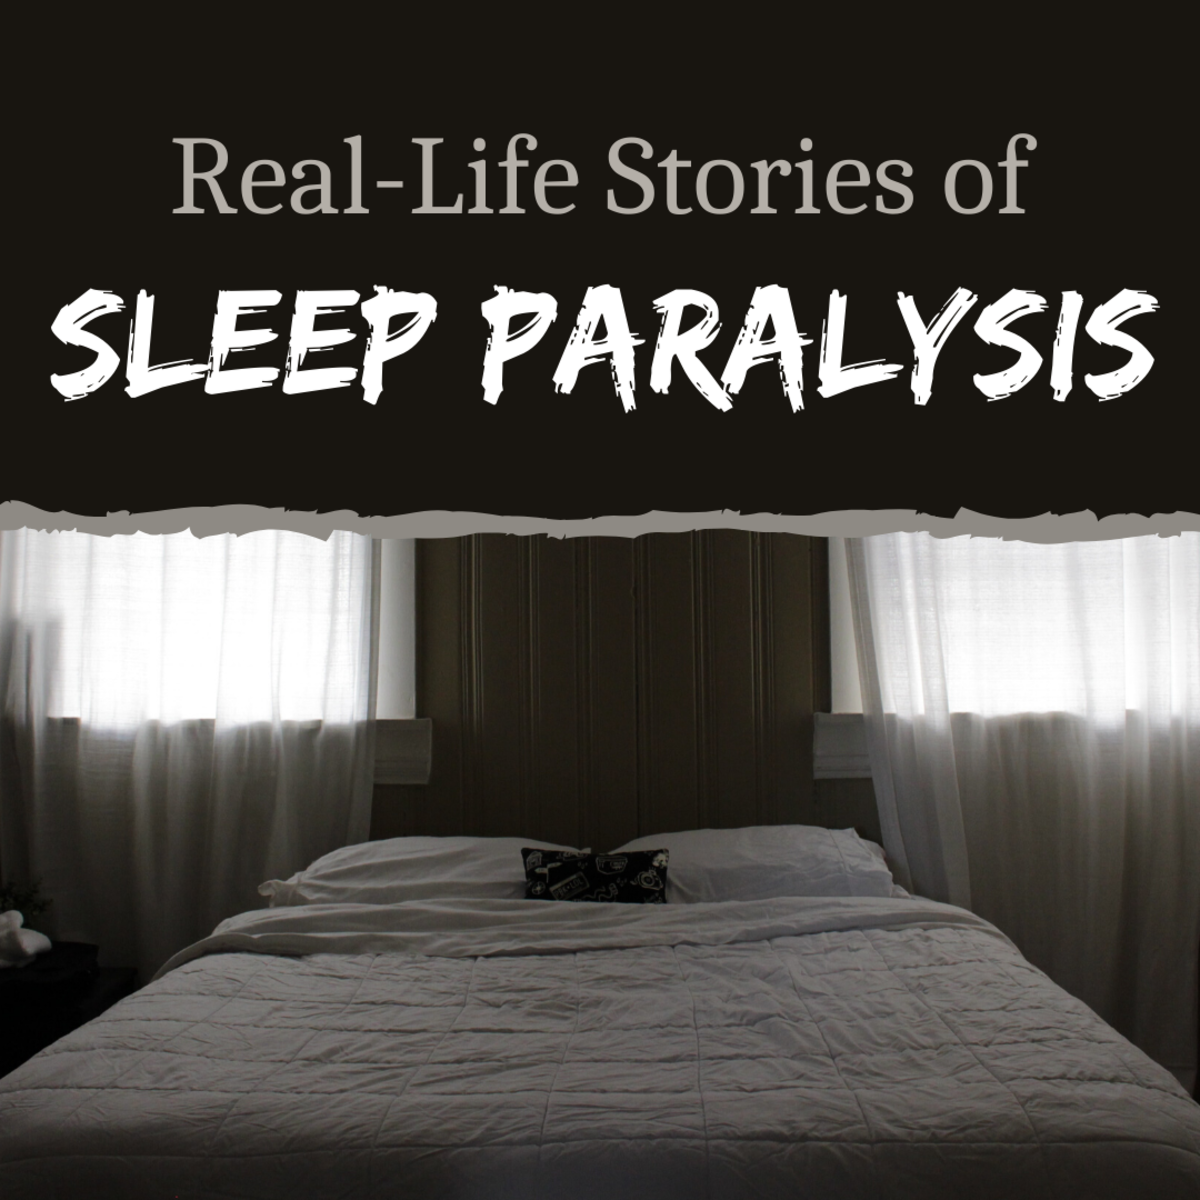 Read my account of my experience with possible sleep paralysis, as well as my cousin's story.